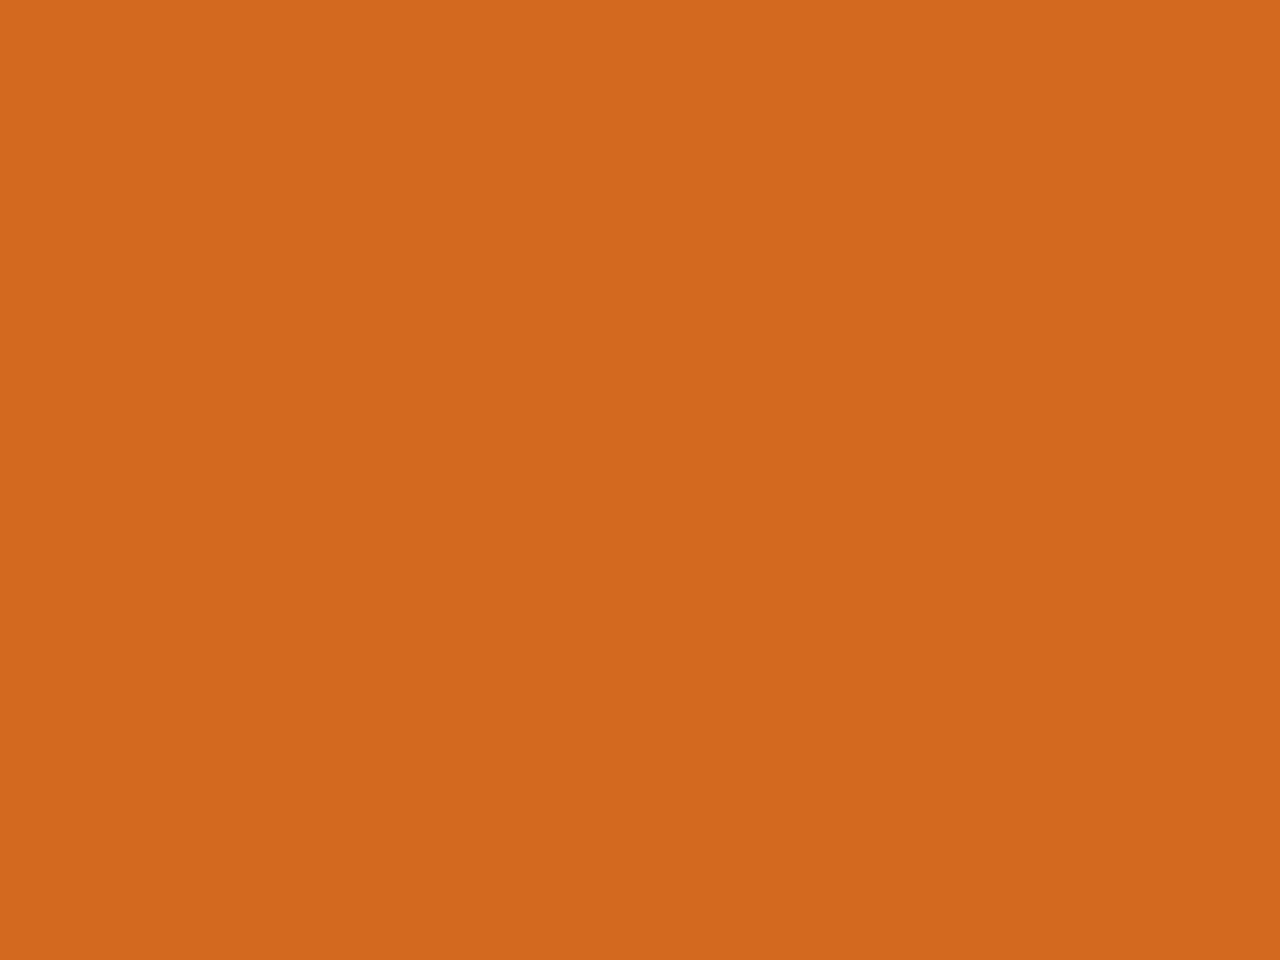 1280x960 Cinnamon Solid Color Background